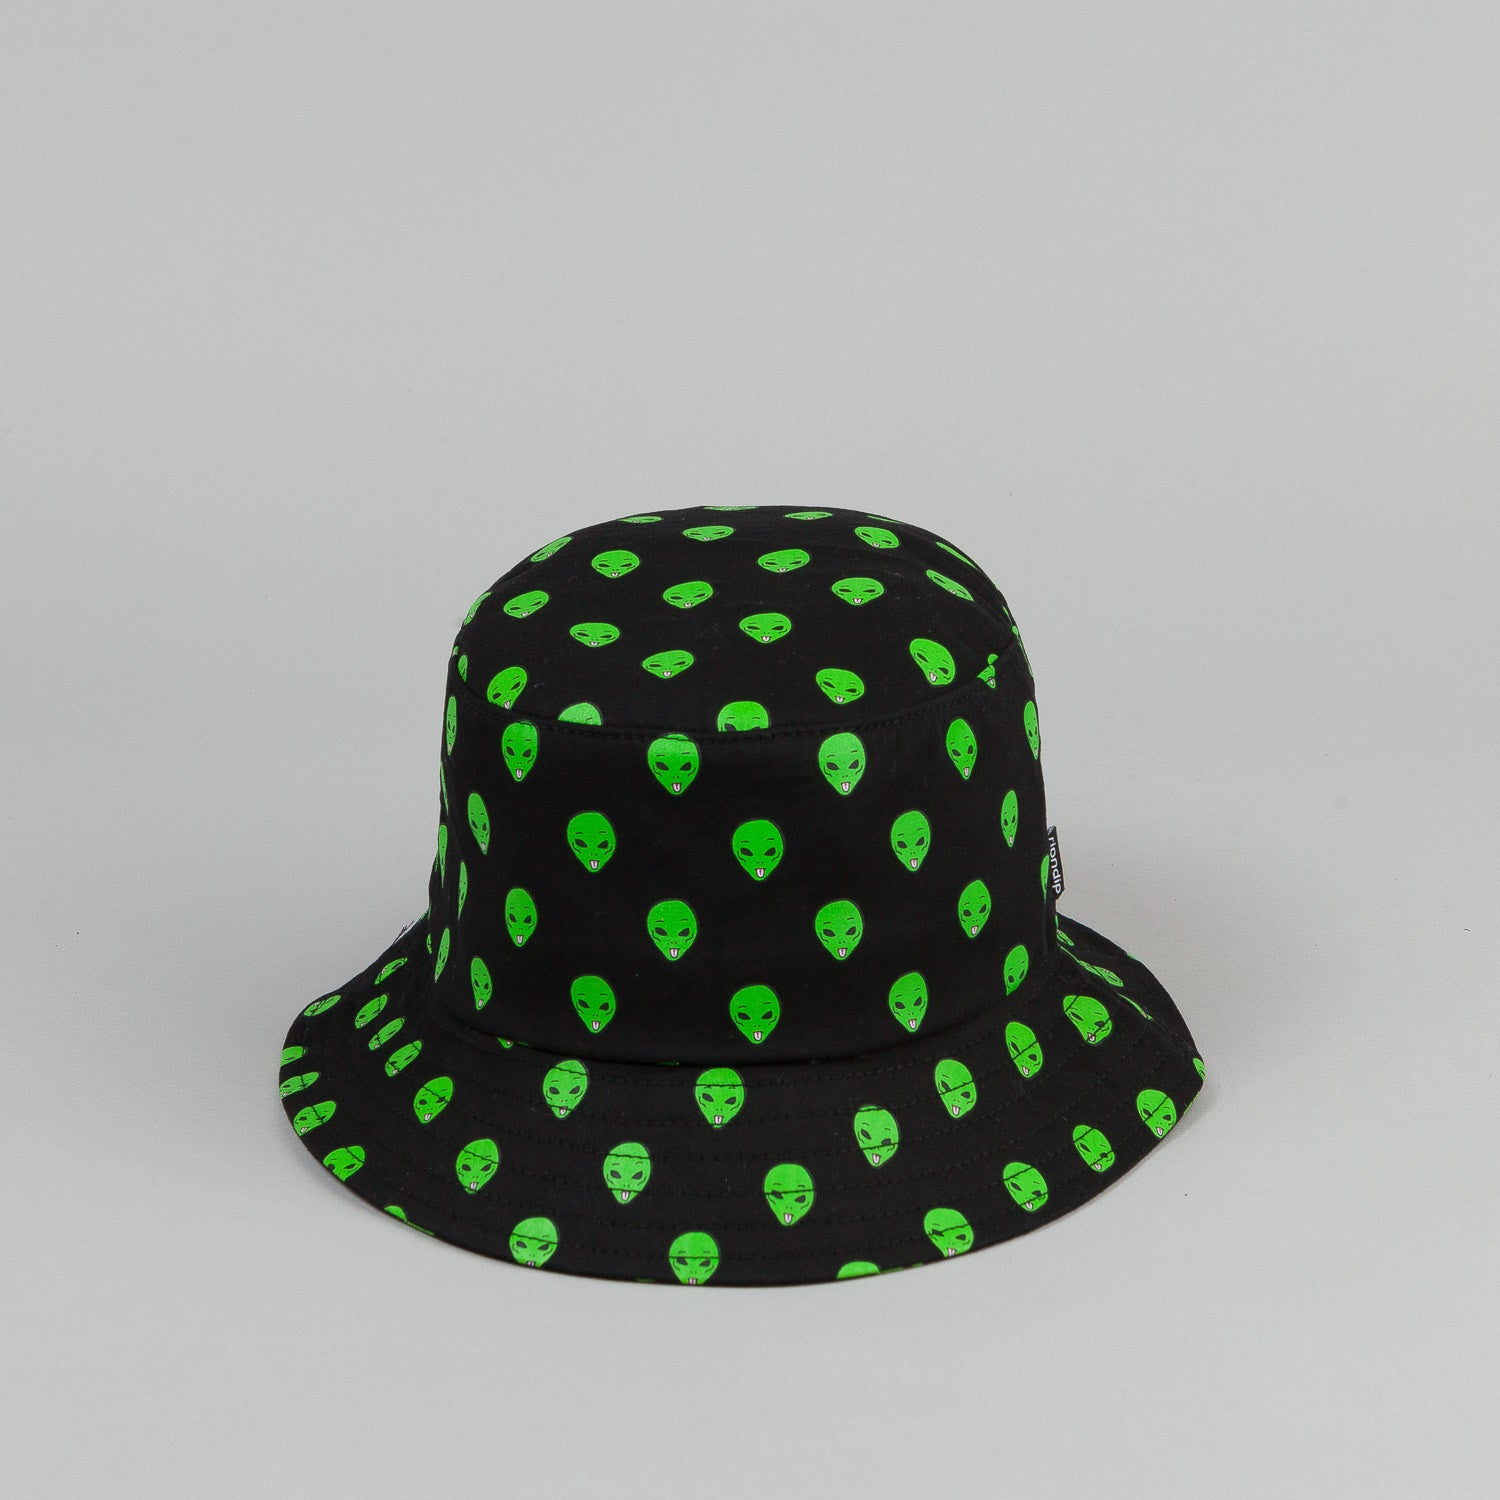 Rip N Dip We Out Here Bucket Hat - Black